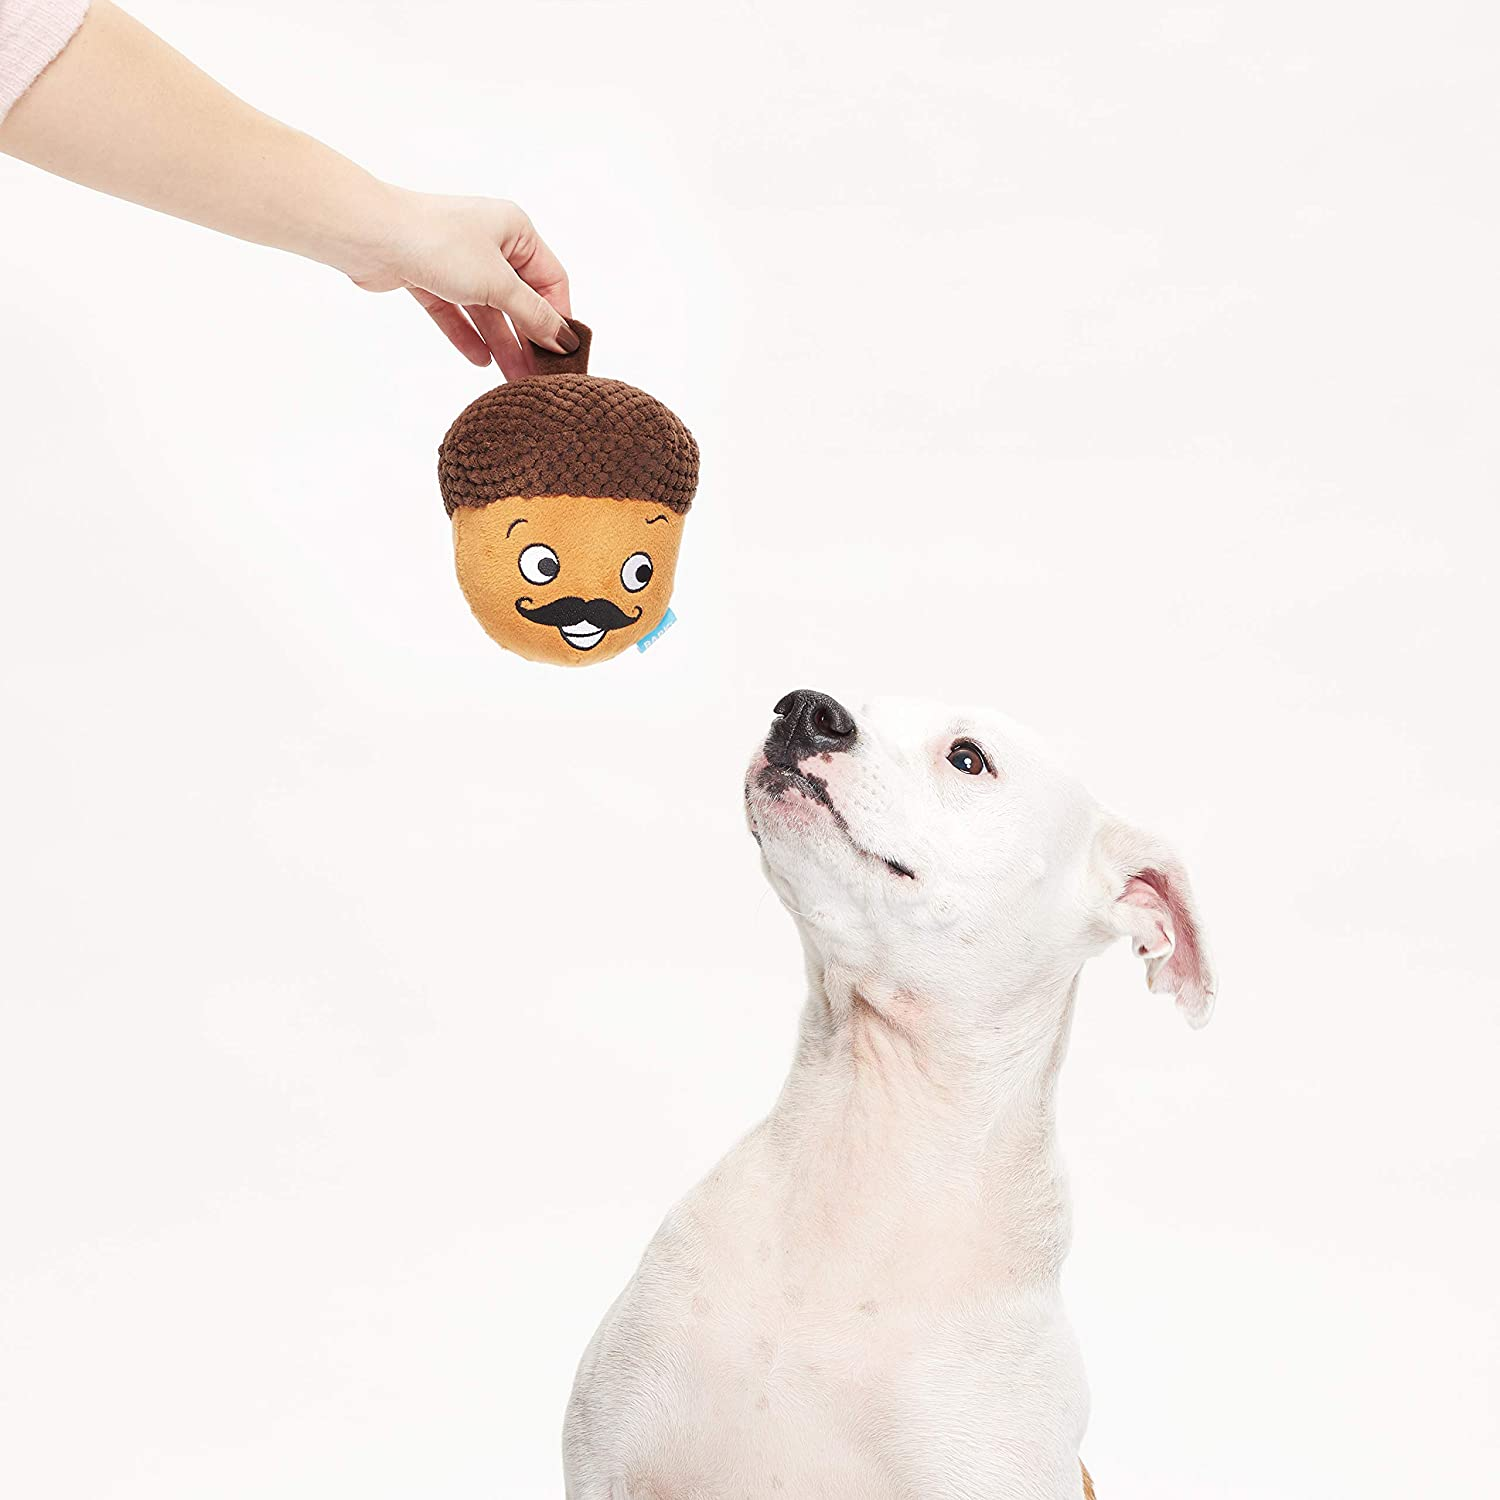 Pet Supplies Barkbox Monsieur Acorn For Medium To Large Dogs Plush Bonus Free Toy Within A Com